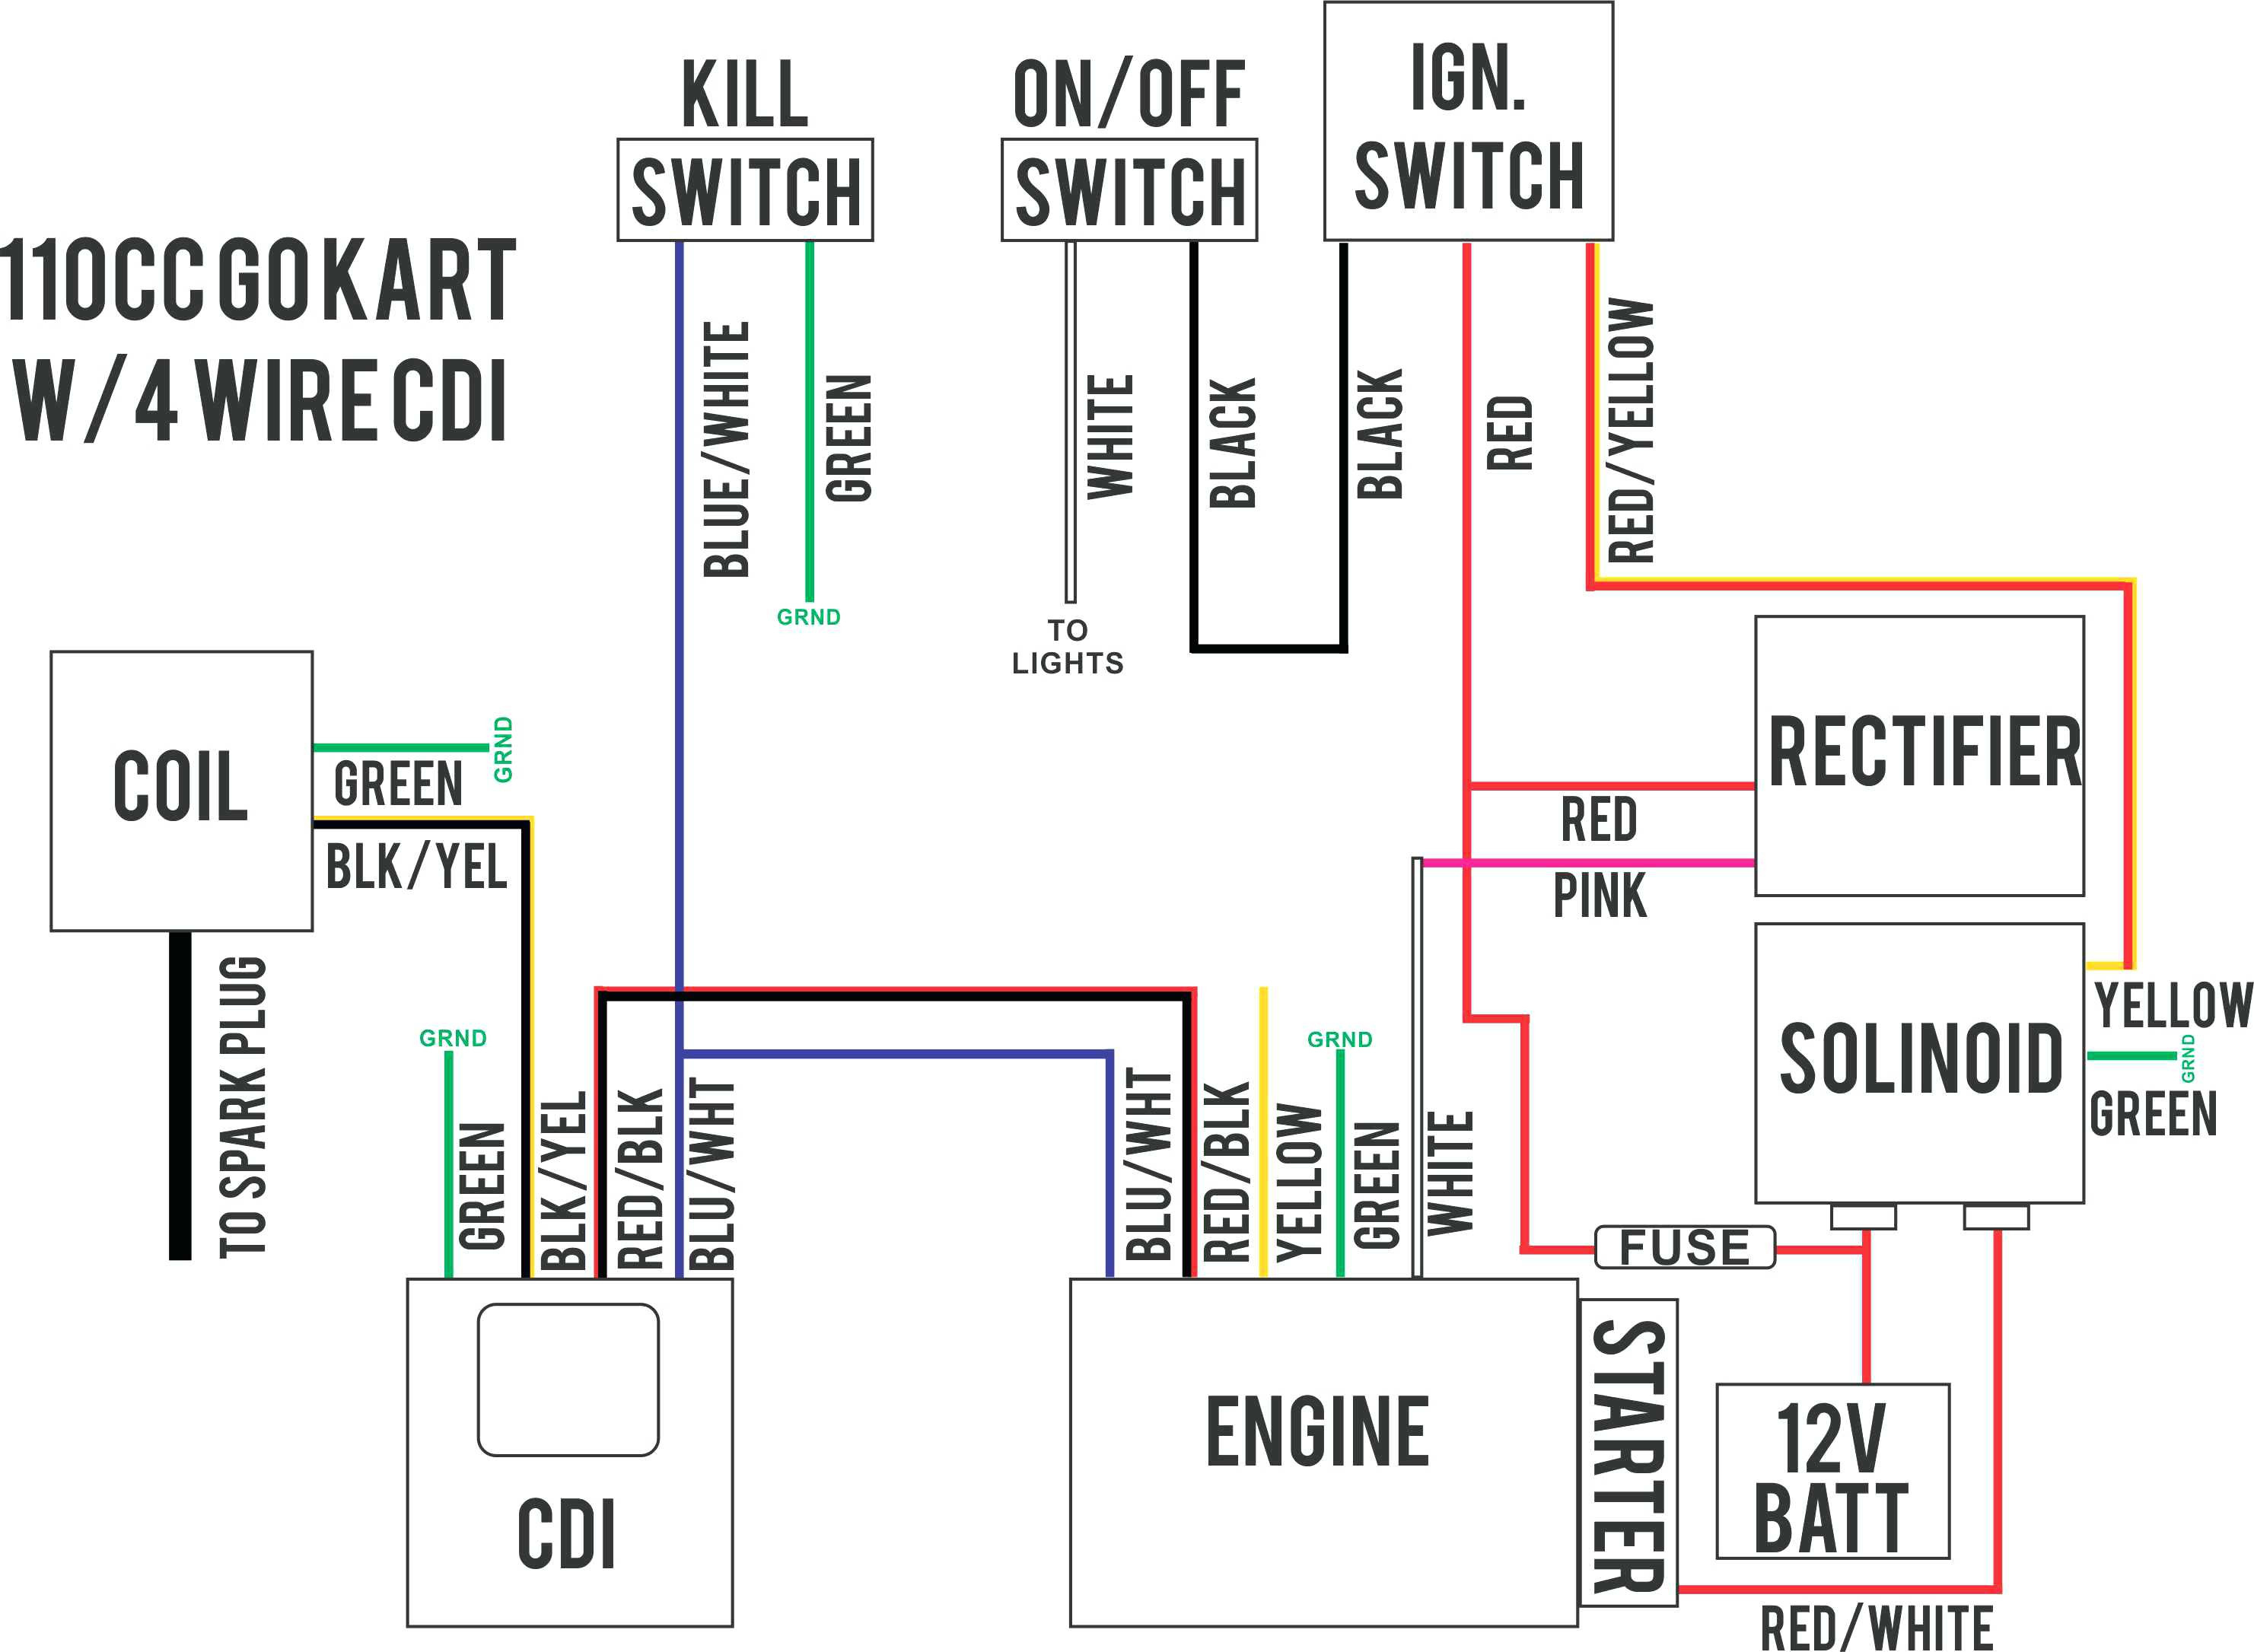 Usb To Av Wiring Diagram | Wiring Diagram - Usb To Av Wiring Diagram